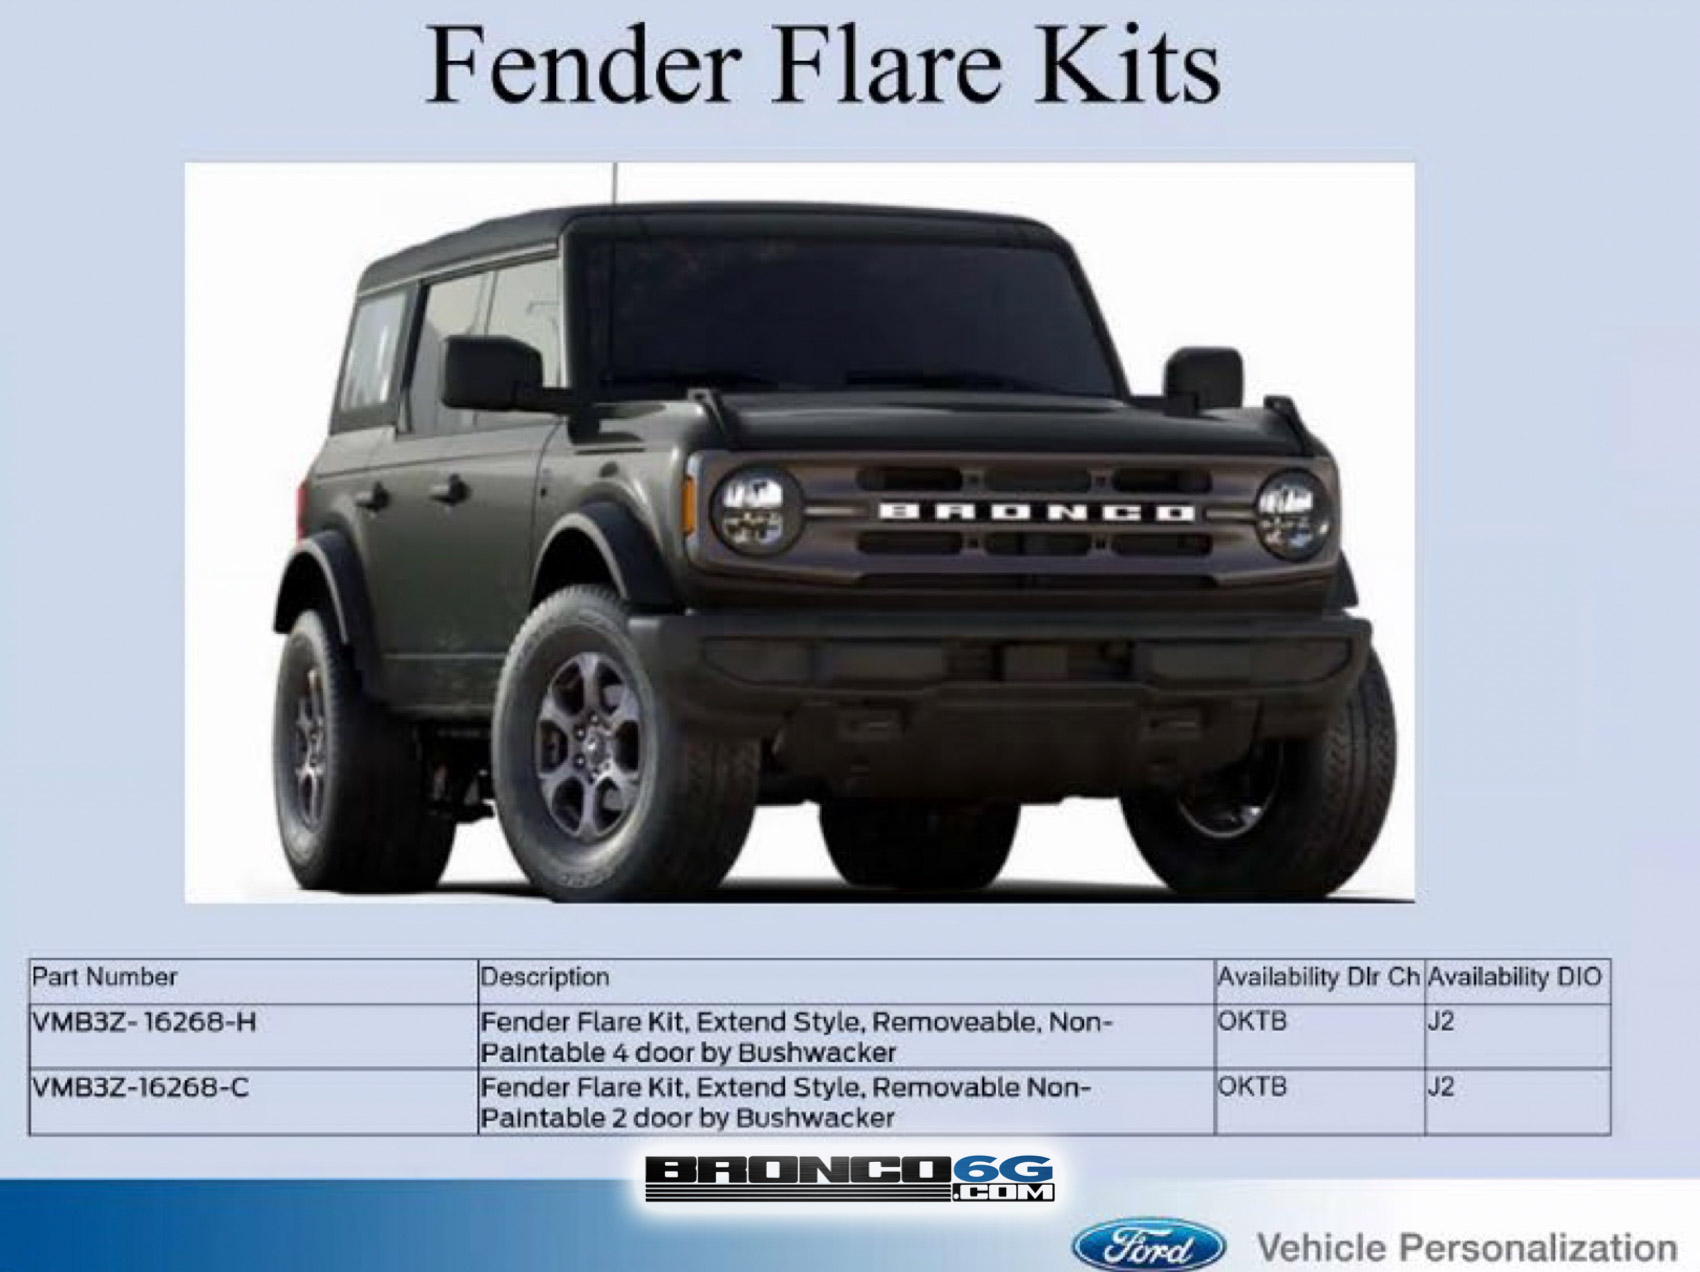 2021 Bronco Fender Flare Kits Ford Performance OEM factory accessory.jpg